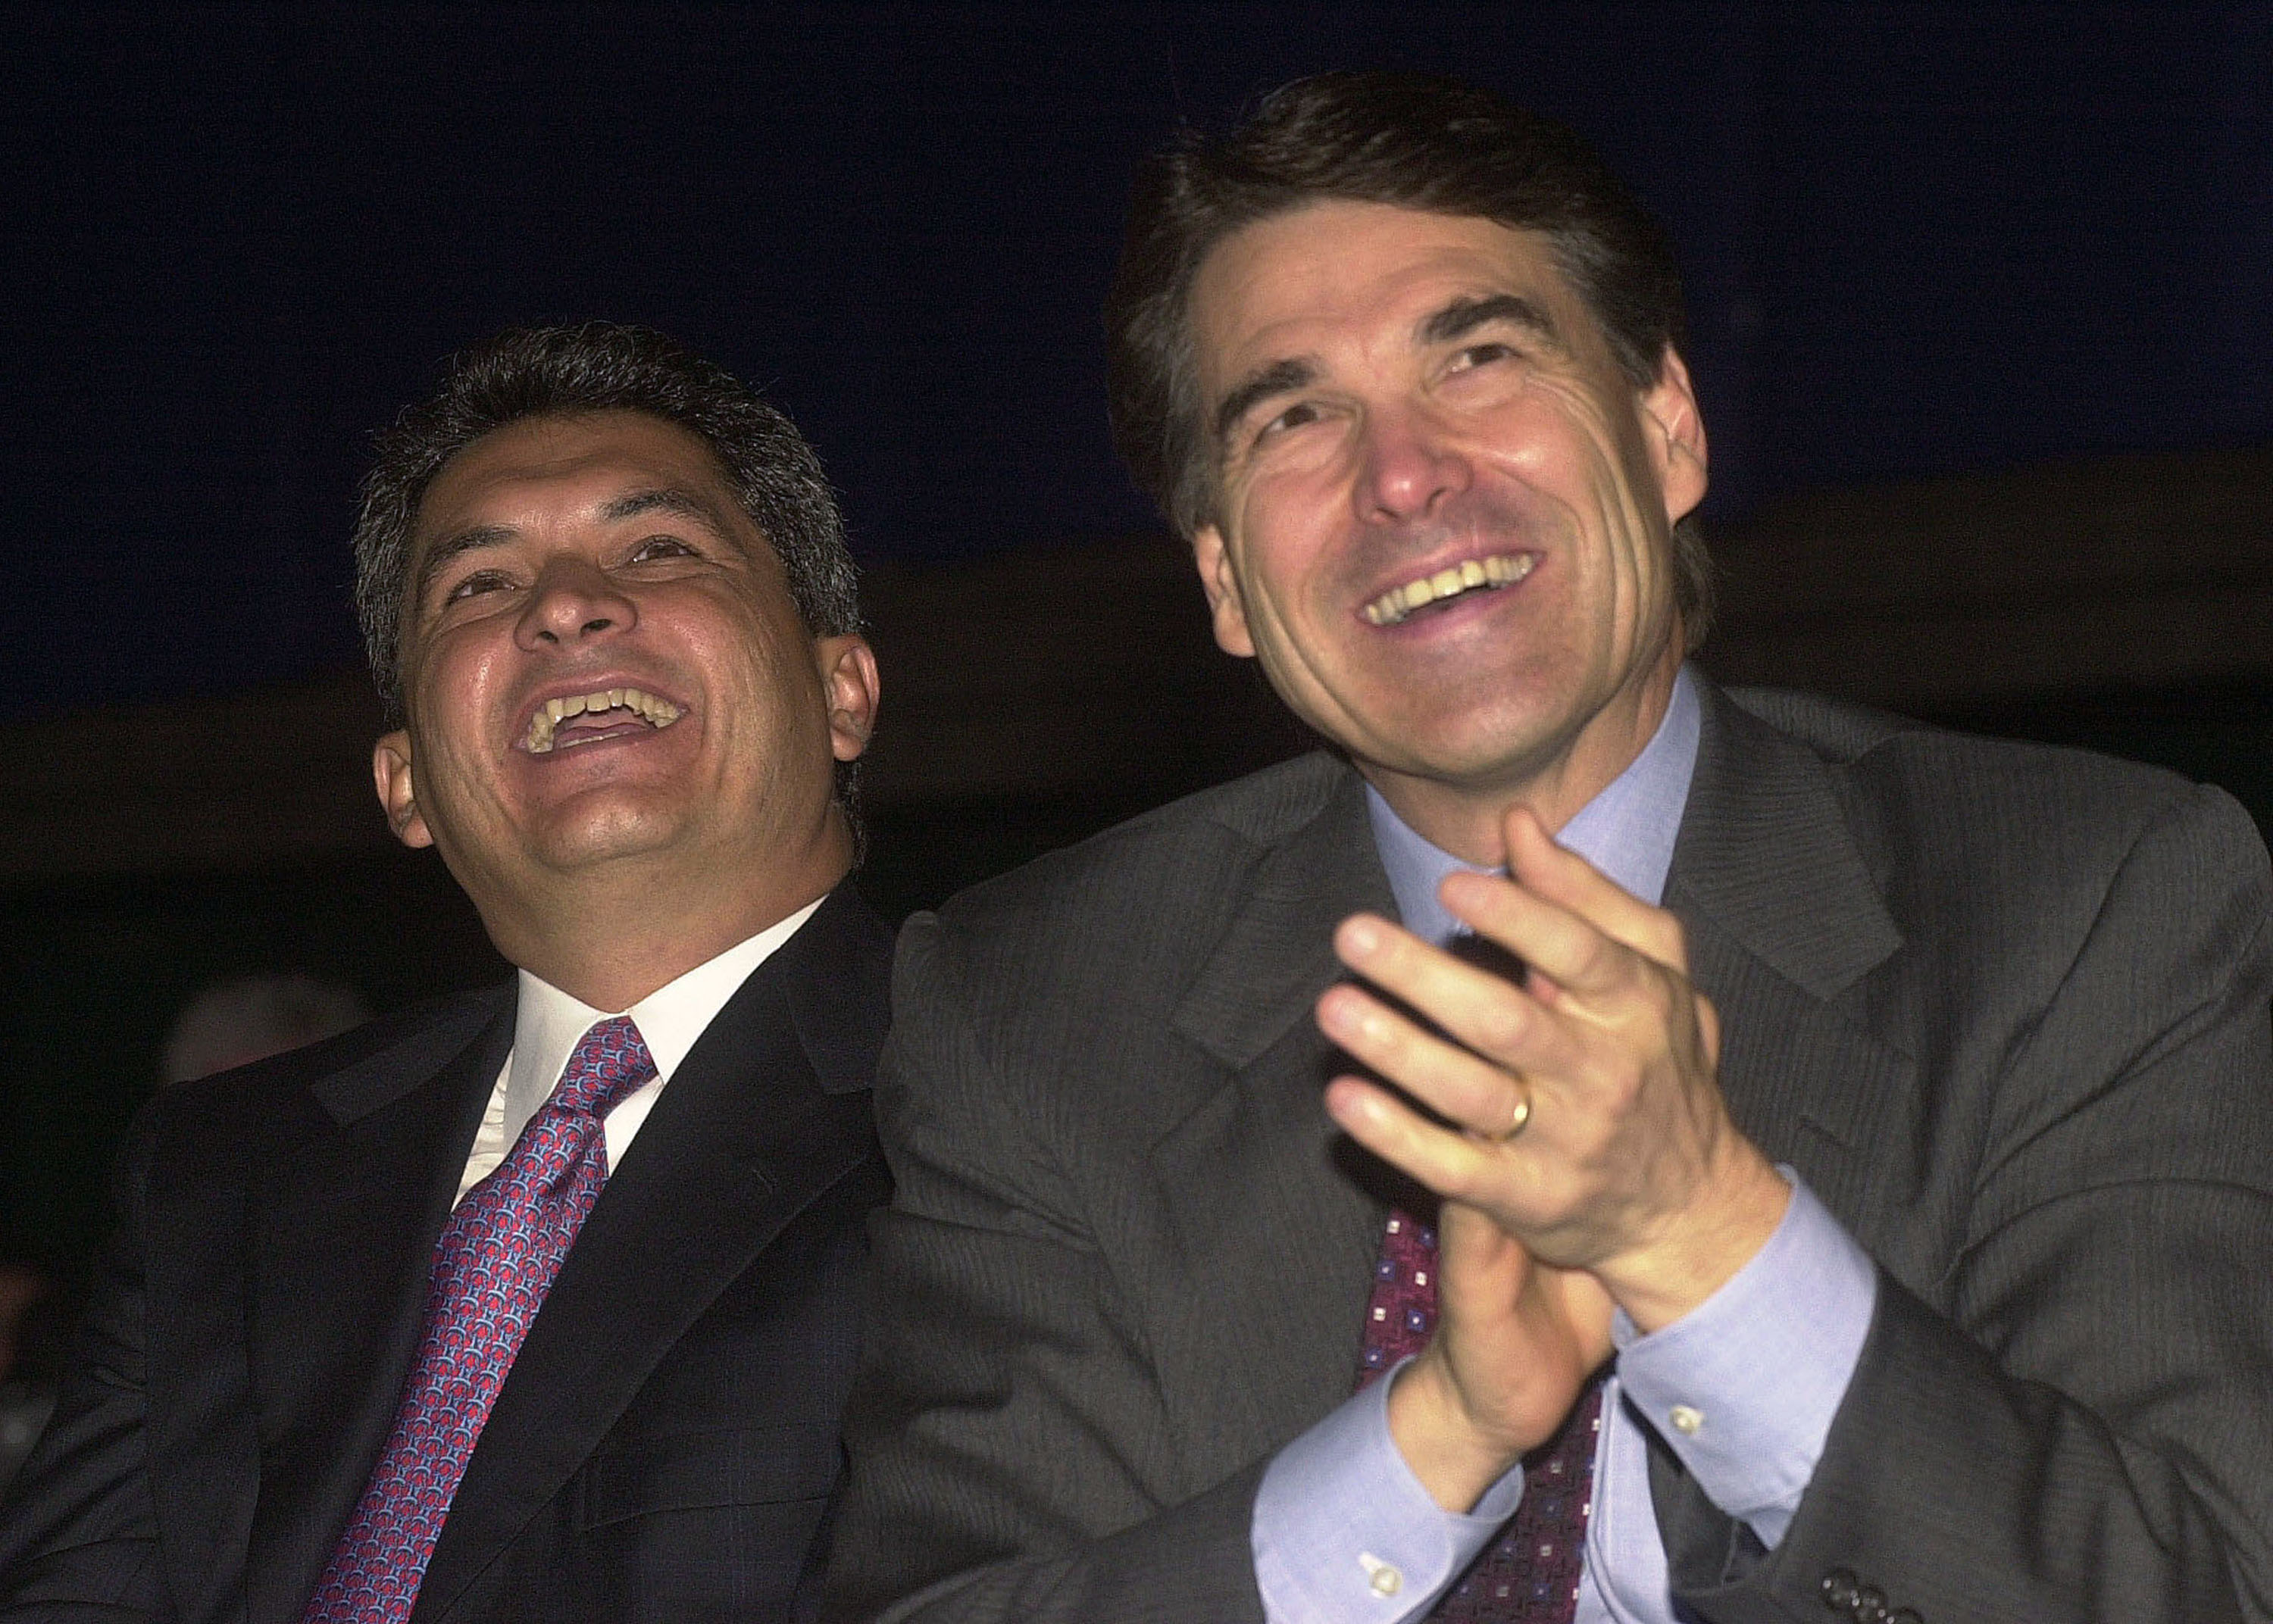 Governor Tomas Yarrington (L) of the state of Tamaulipas, Mexico, and Texas Governor Rick Perry listen to remarks during the U.S. and Mexico Border Summit August, 22, 2001 in Edinburg, TX. (Photo by Alicia Wagner Calzada/Getty Images)